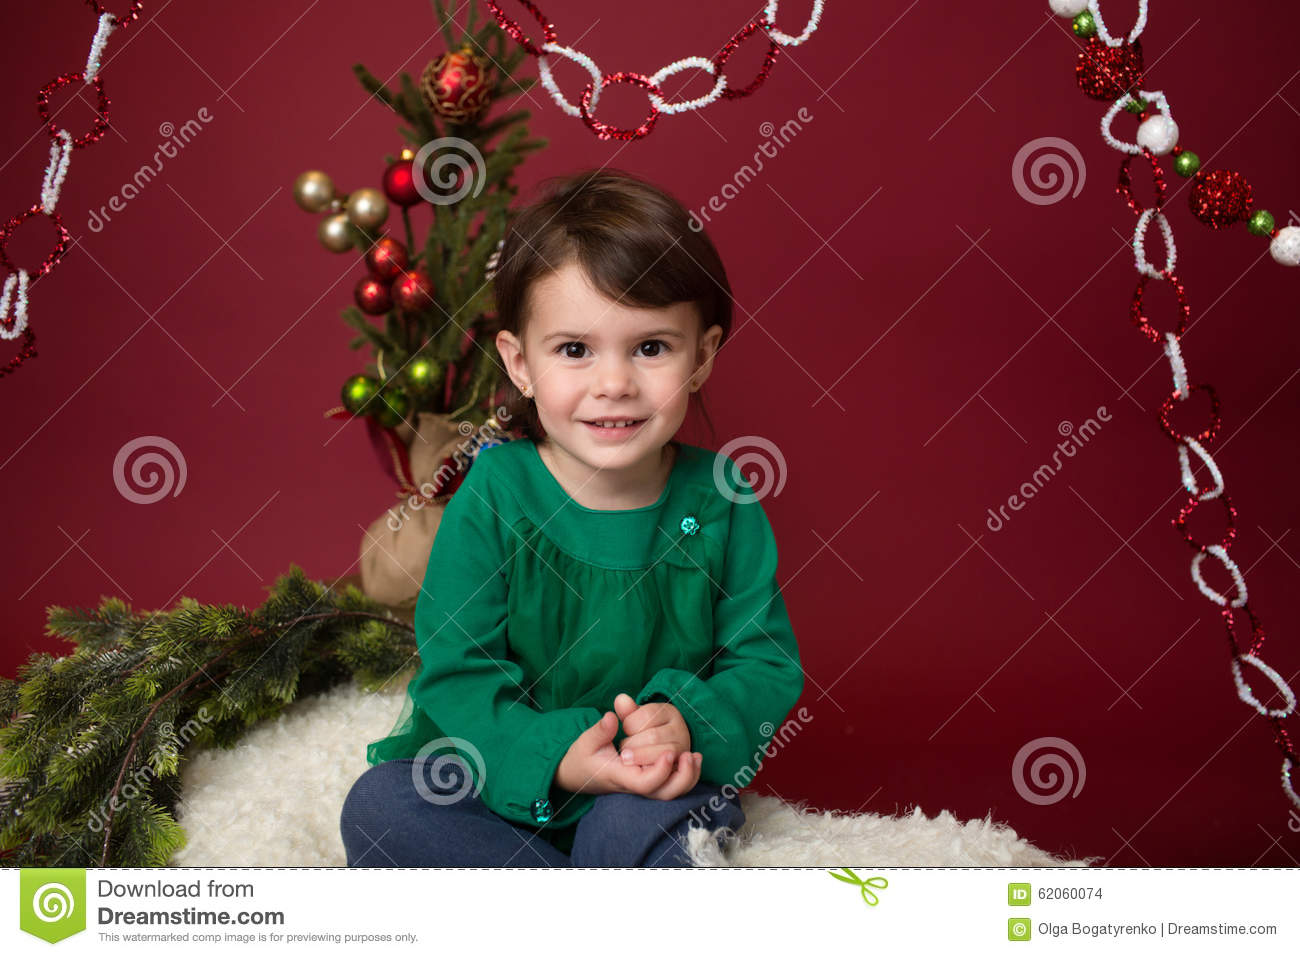 c3a07474b Christmas Child On Sled Against Christmas Tree With Ornaments Stock ...